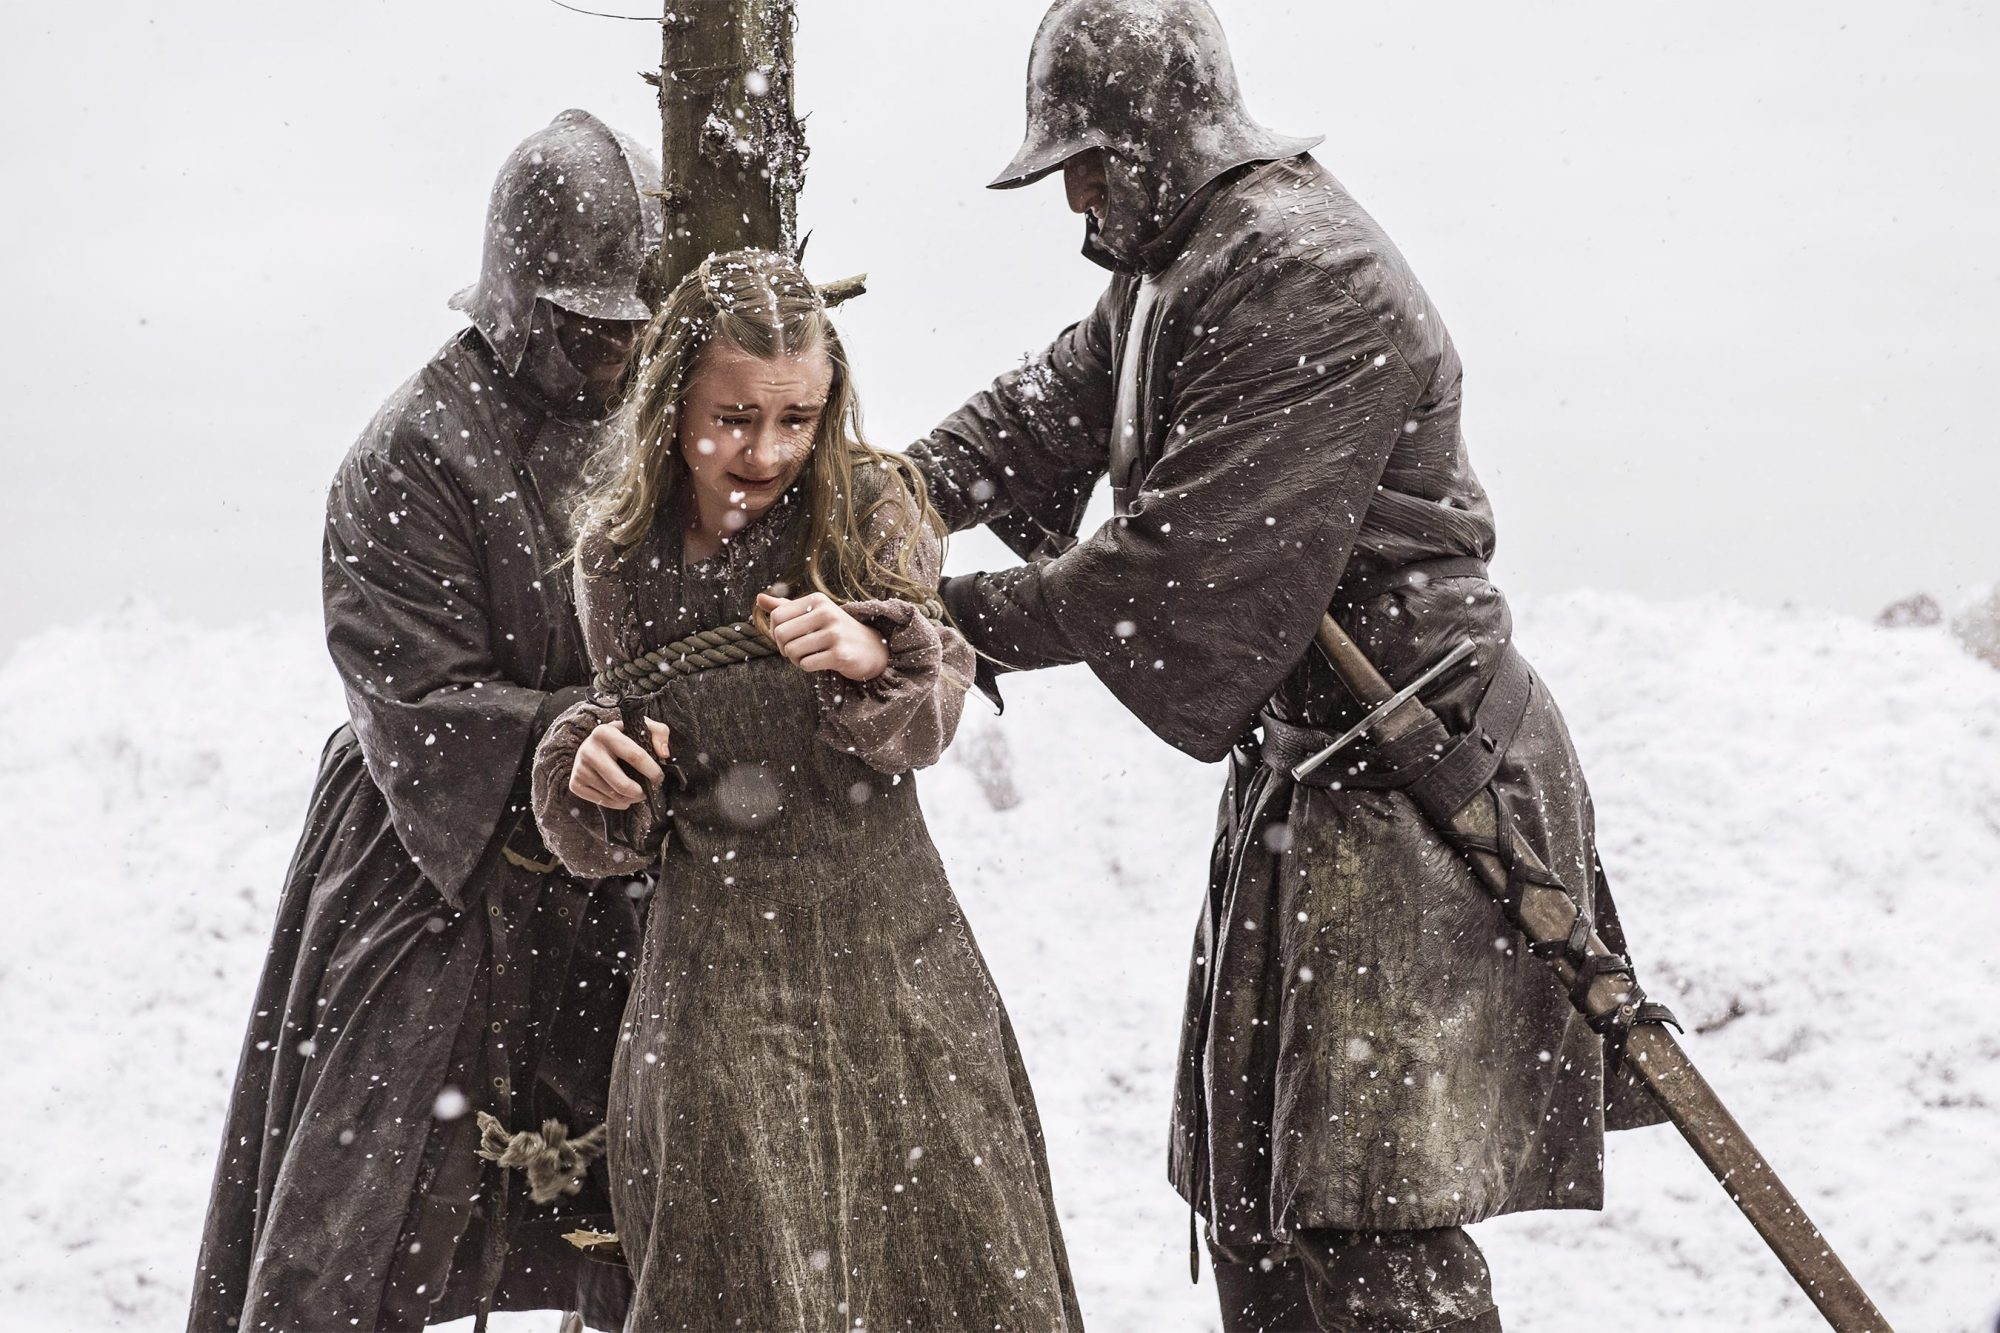 Shireen Baratheon (Kerry Danielle Ingram), Game of Thrones